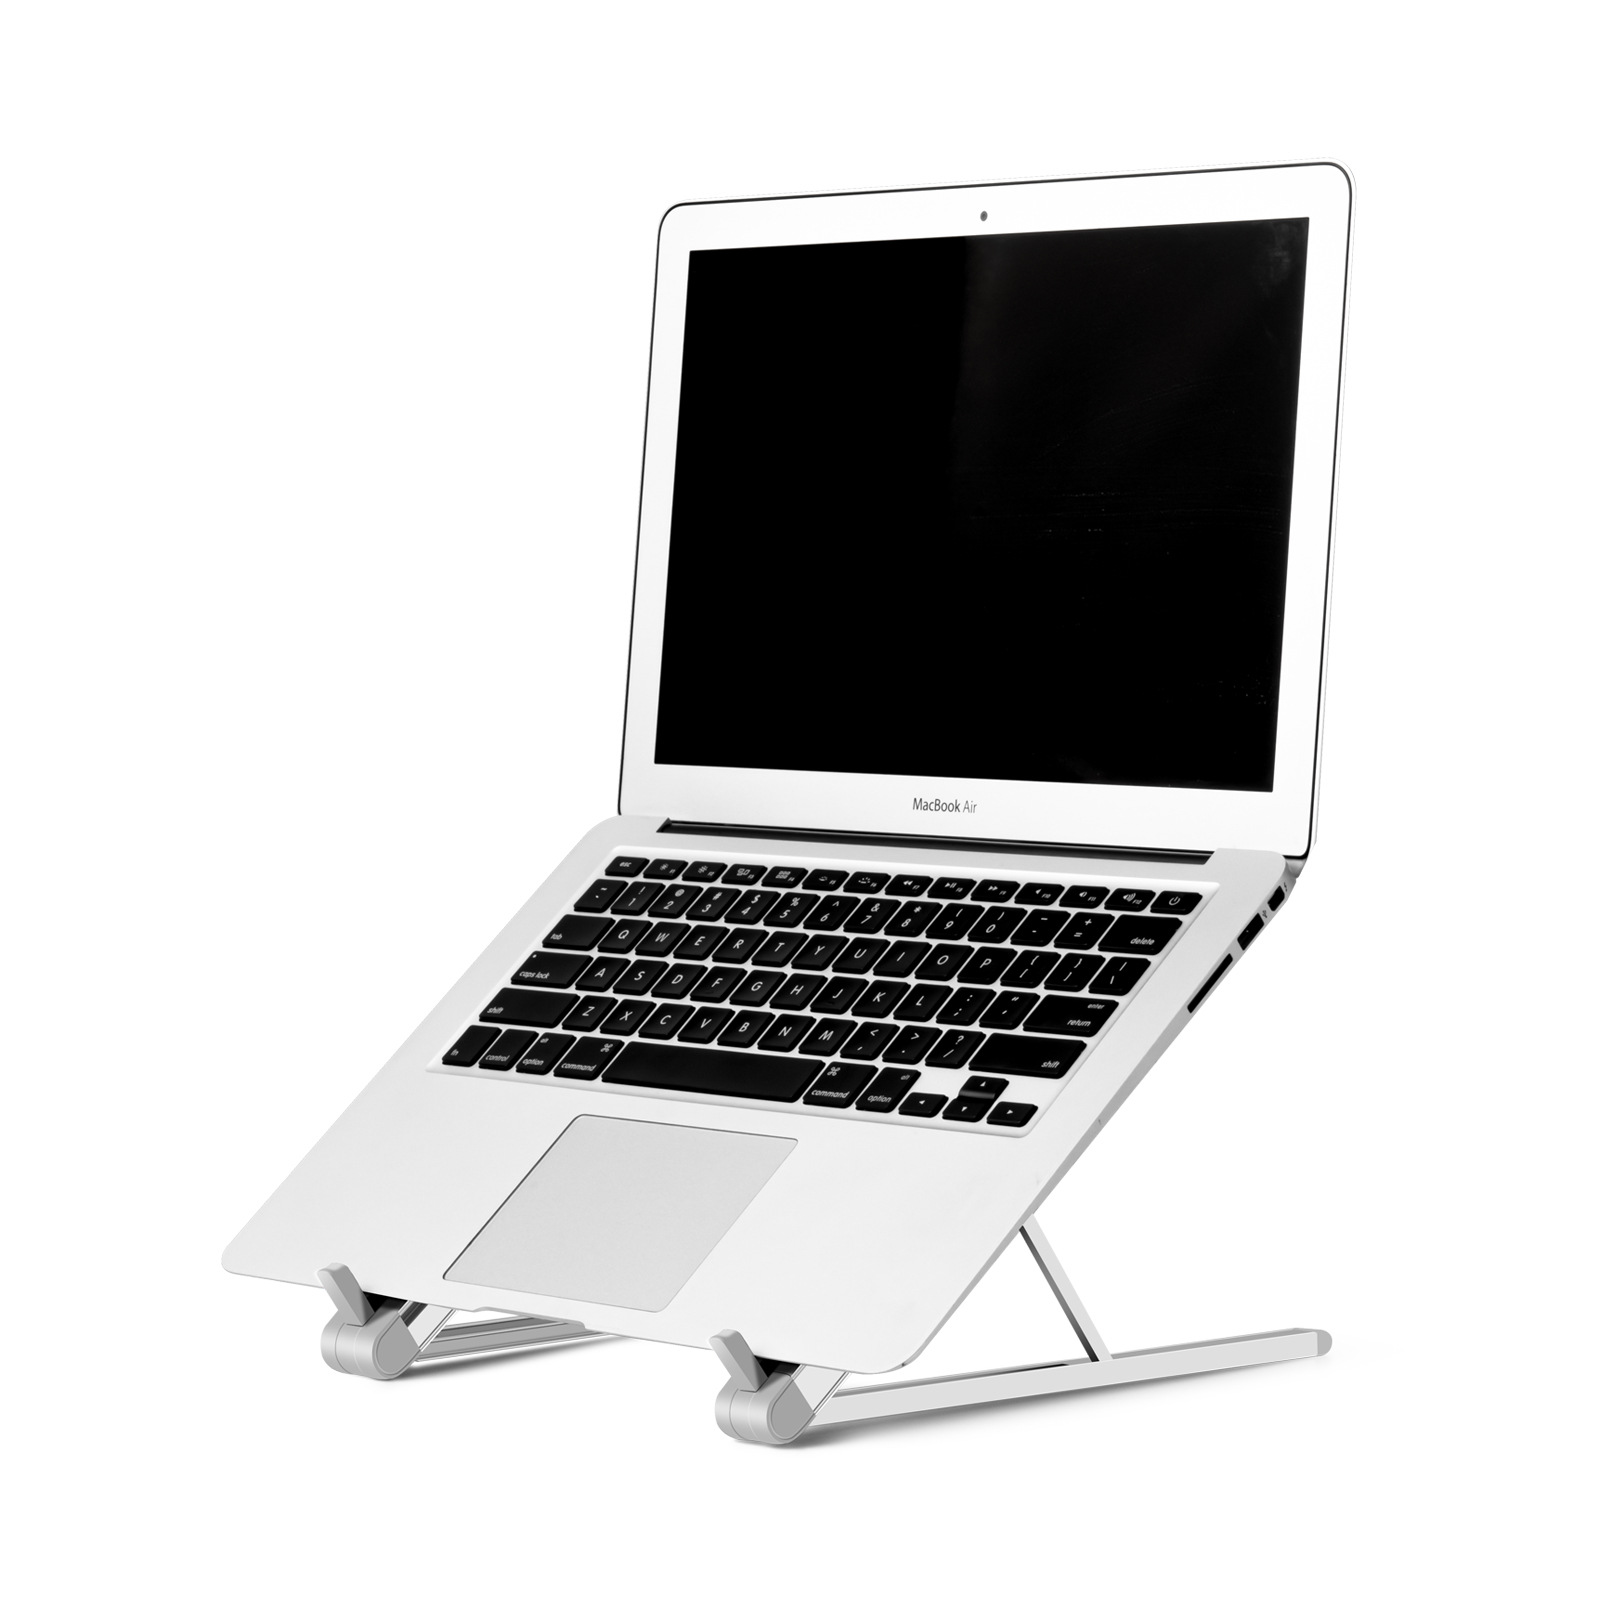 Portable Laptop Stand, Aluminum Foldable Holder, 6 Levels Height & Angle Adjustable Aluminum Ventilated Notebook Riser for MacBook Air Pro, More 10-15.6 inches PC Computer, Tablet, iPad